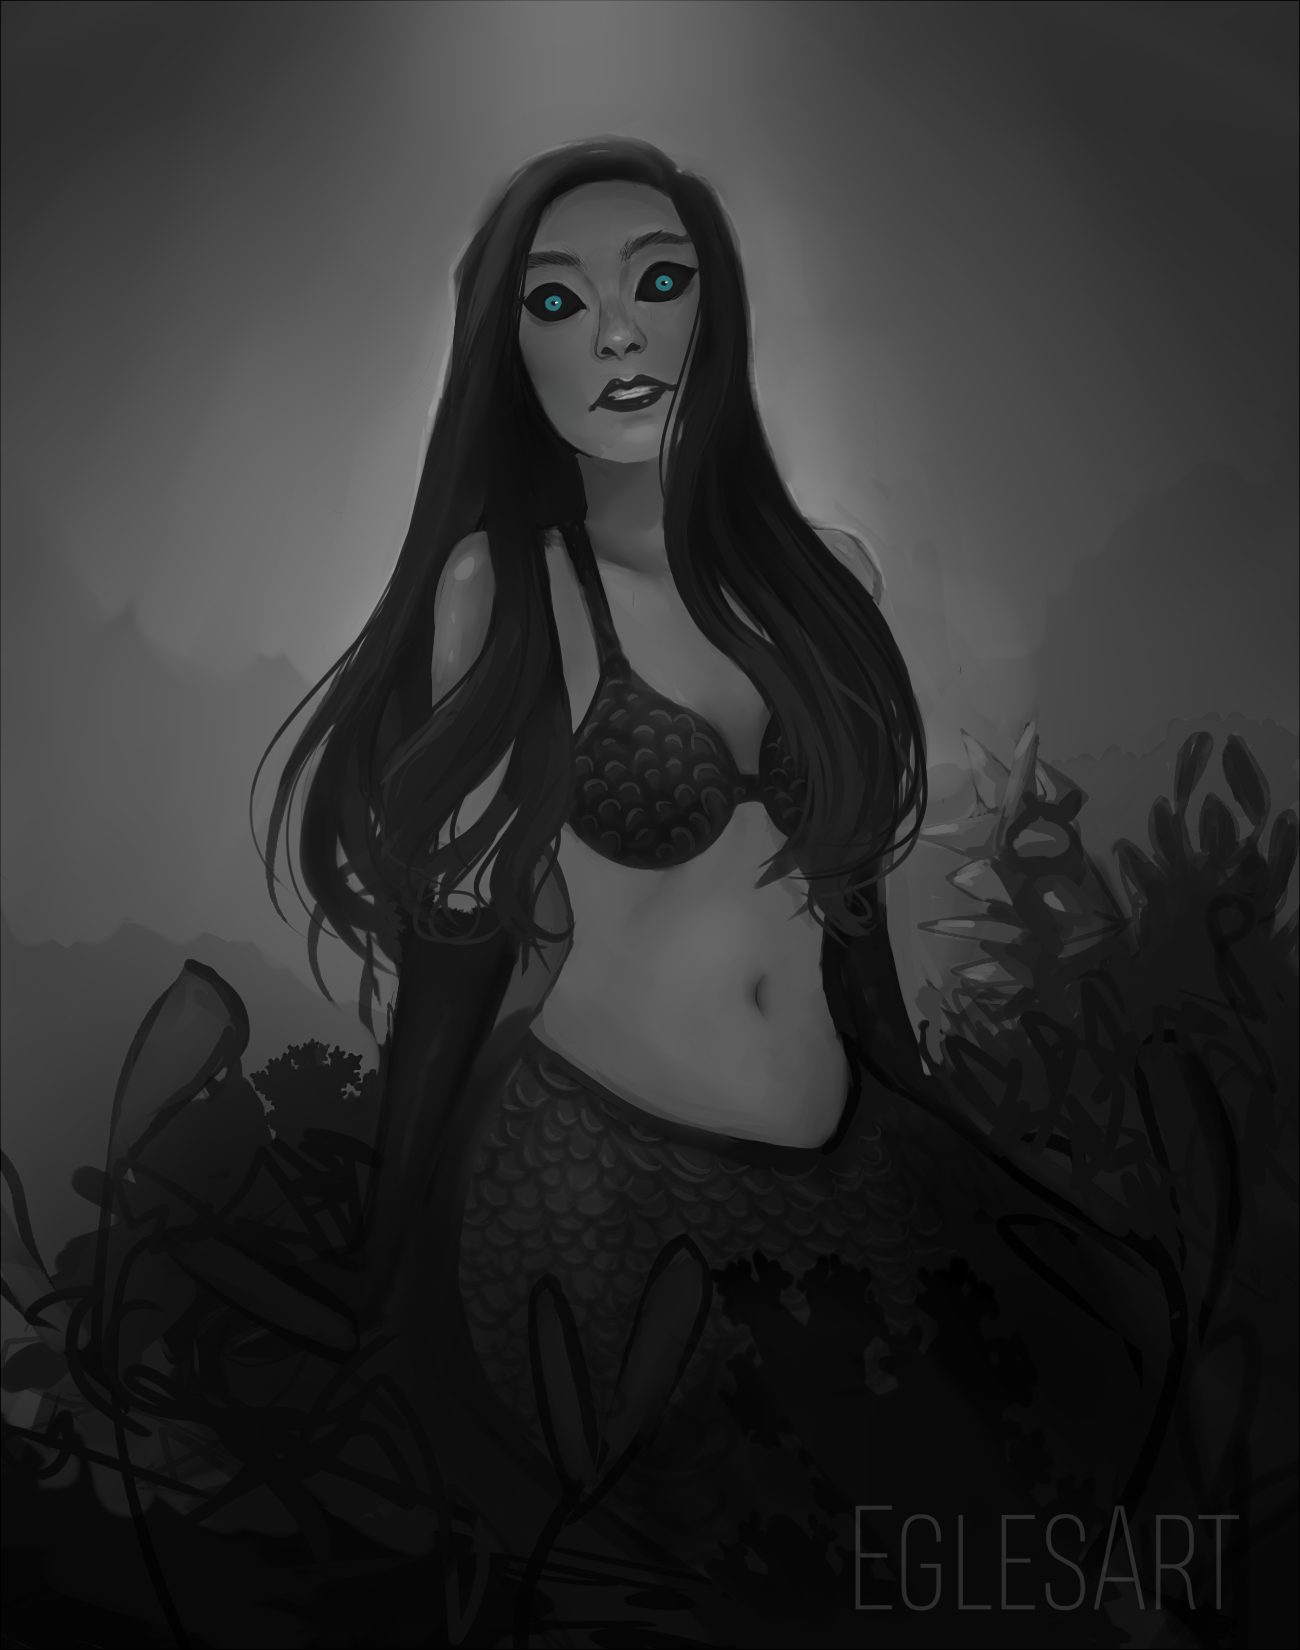 Siren, a drawing by Eggylyte